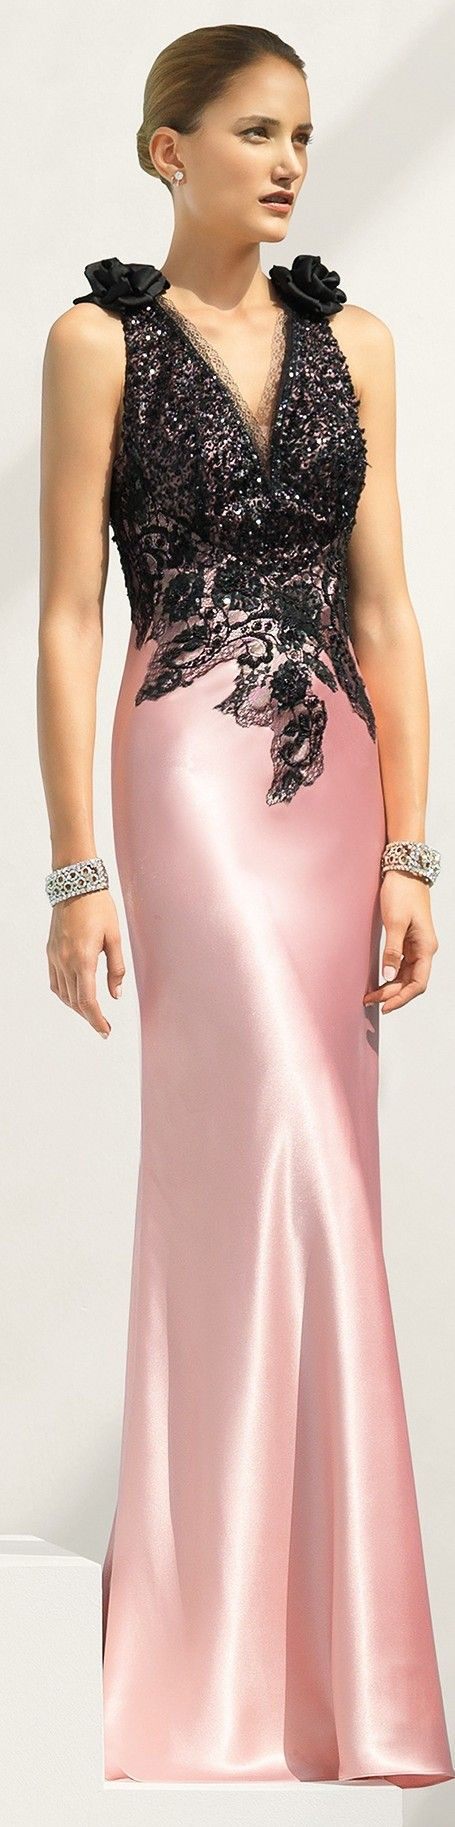 I love the beaded black bodice with the pink gown. Love the color combo.